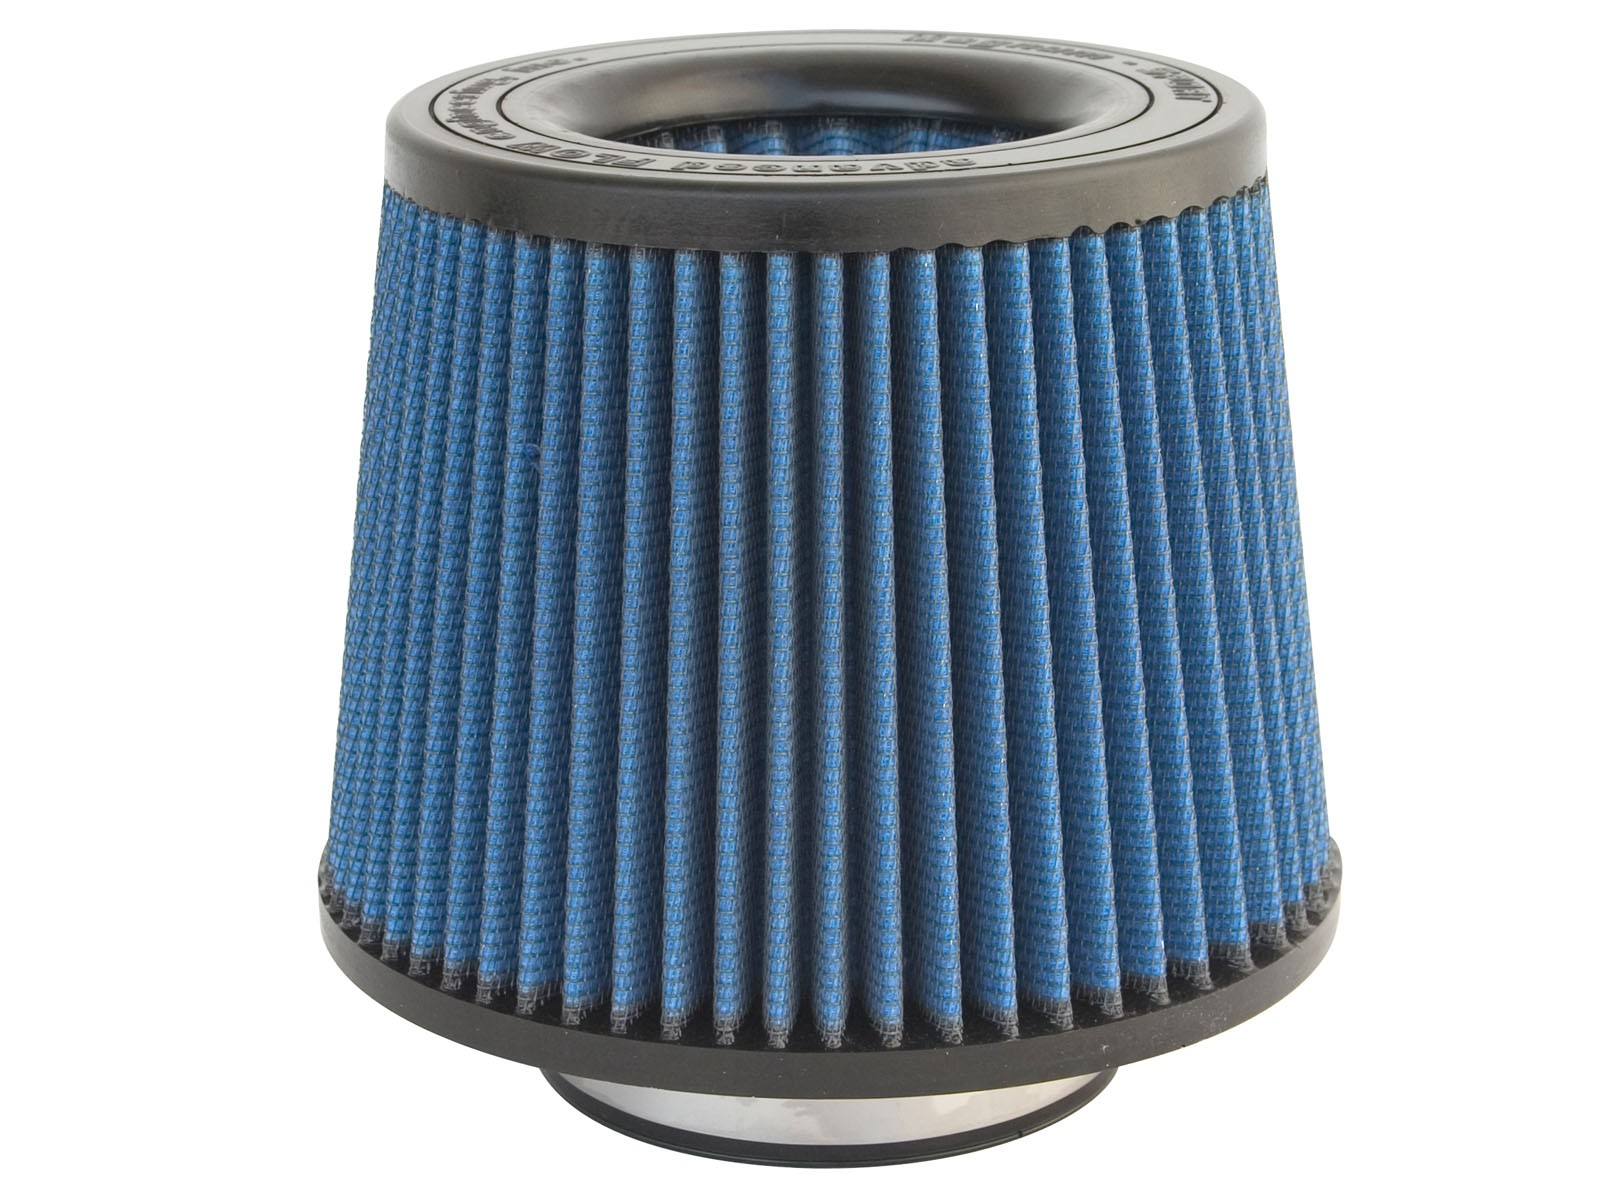 aFe POWER 24-91034 Magnum FLOW Pro 5R Air Filter